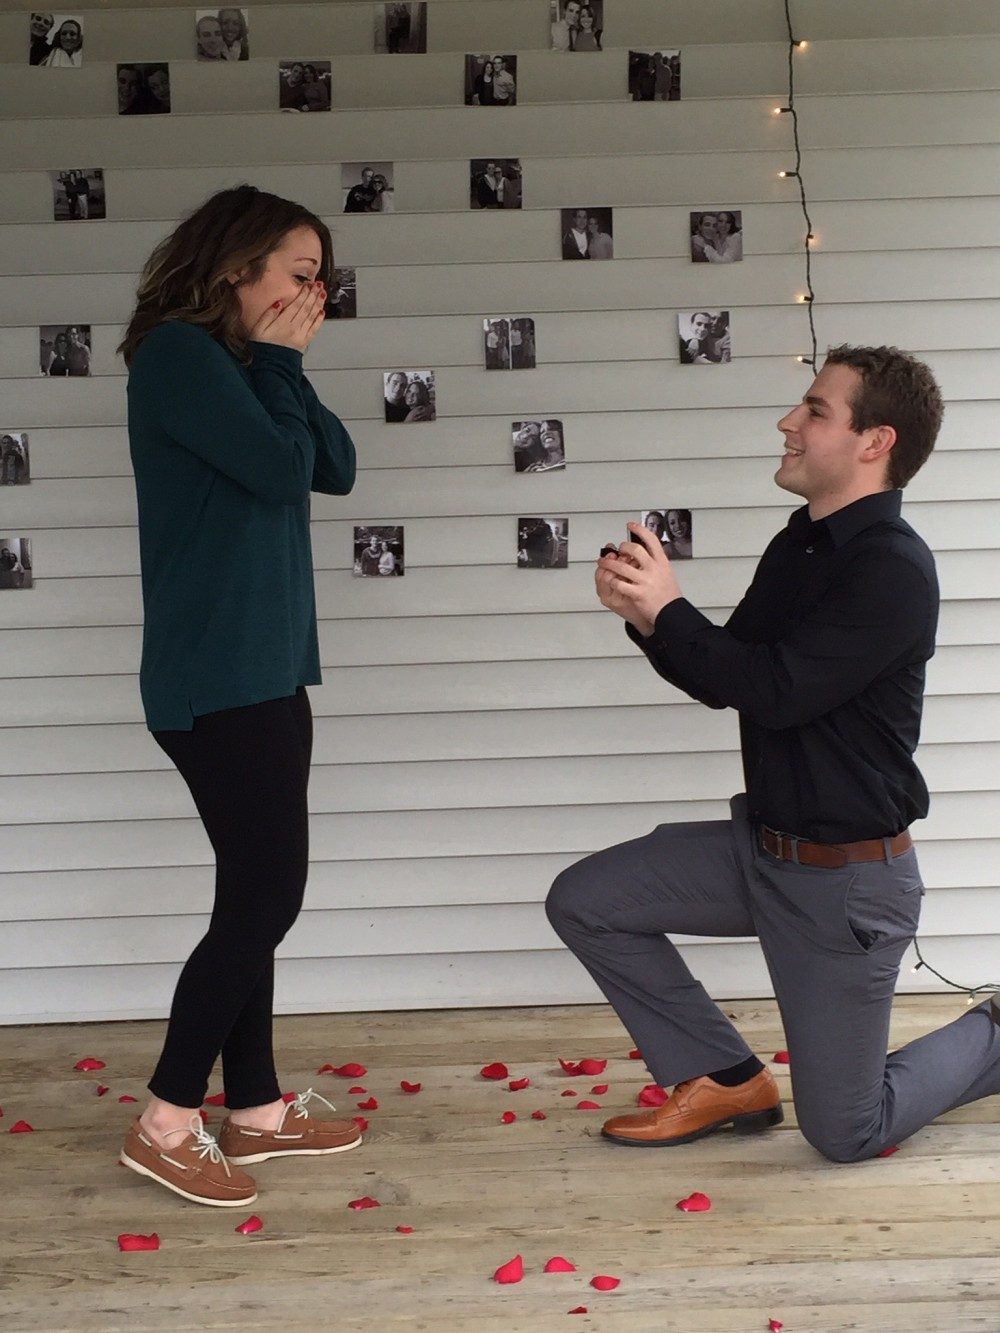 Image 4 of Lauren and Connor's Sweet Back Porch Proposal